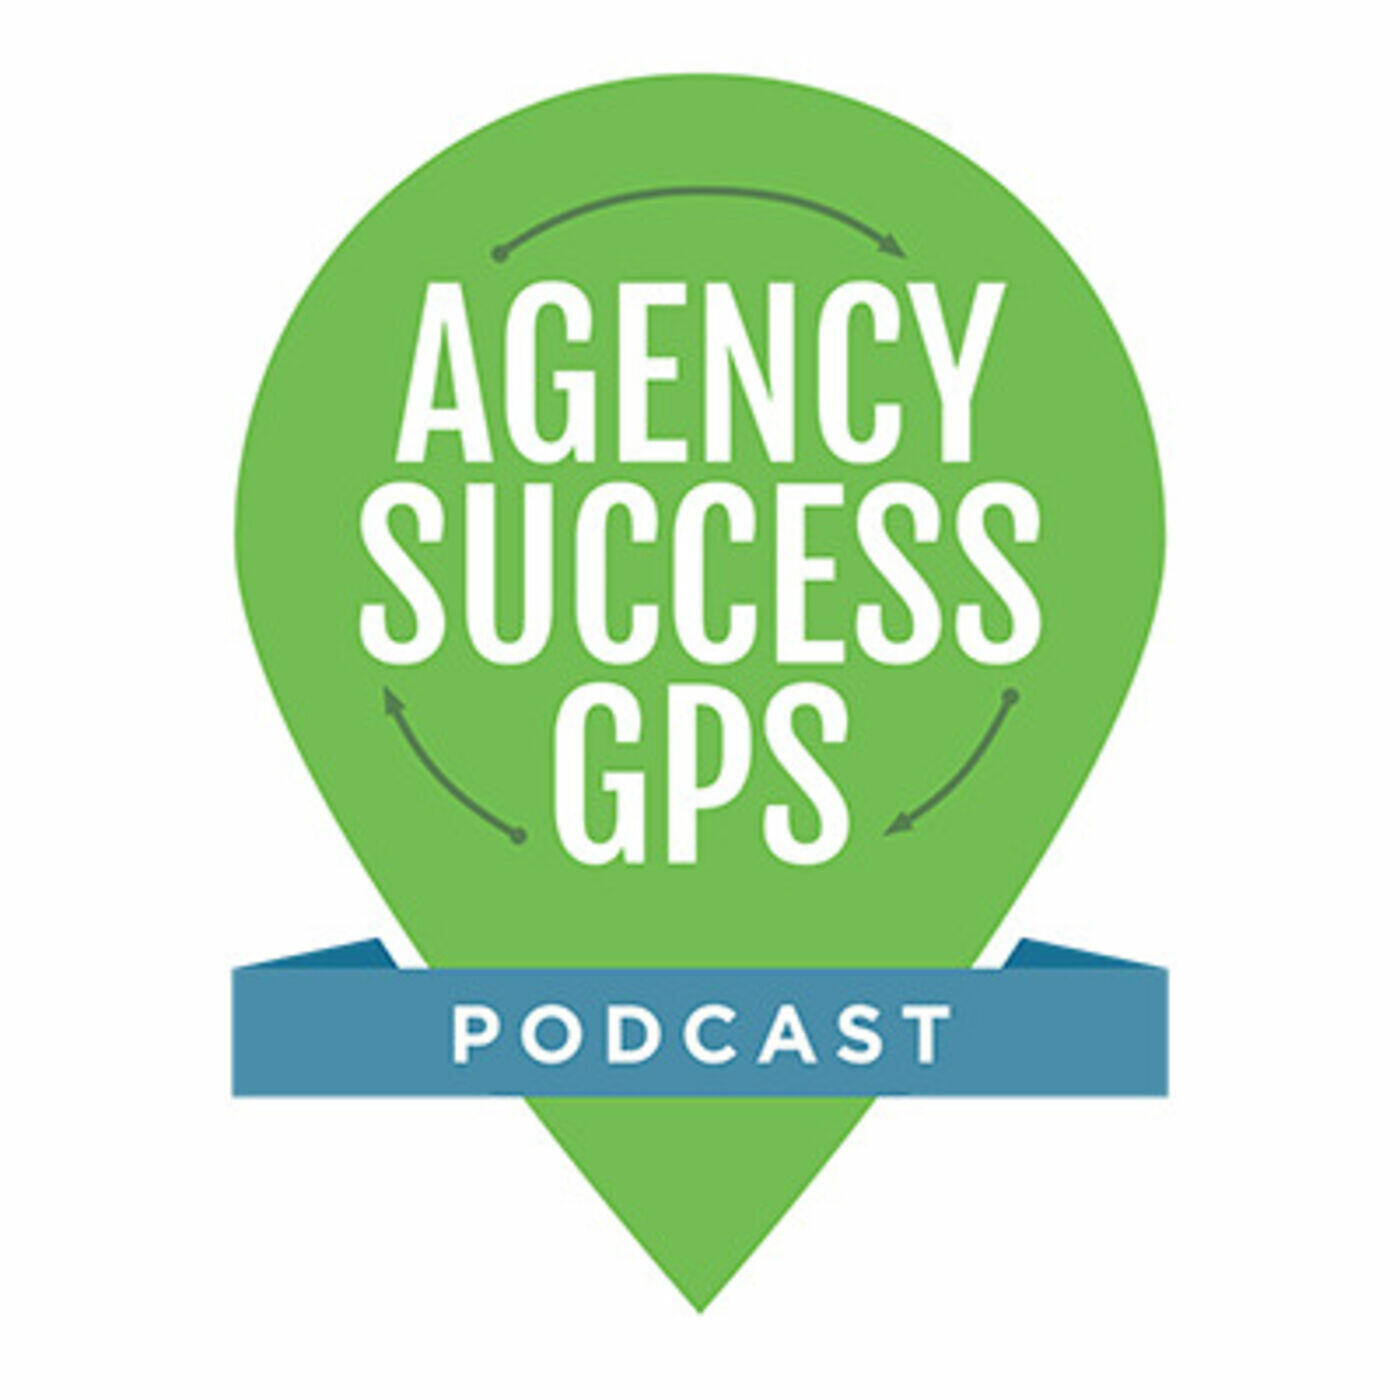 Agency Success GPS Podcast - Featuring Lee Goff - Your Marketing Agency Coach